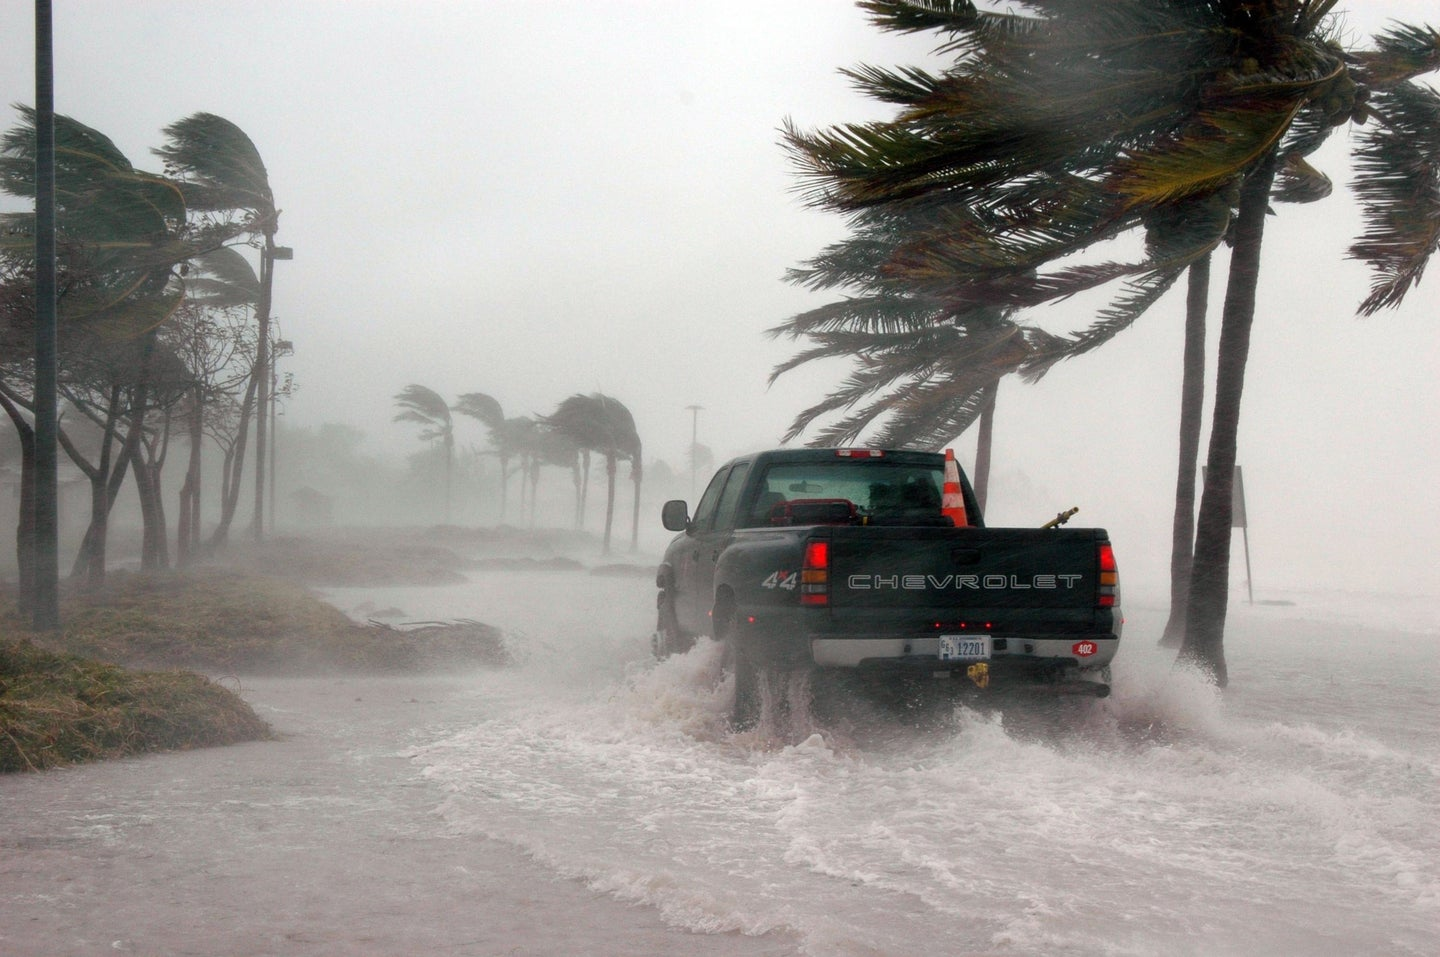 truck driving through water on beach as hurricane moves in